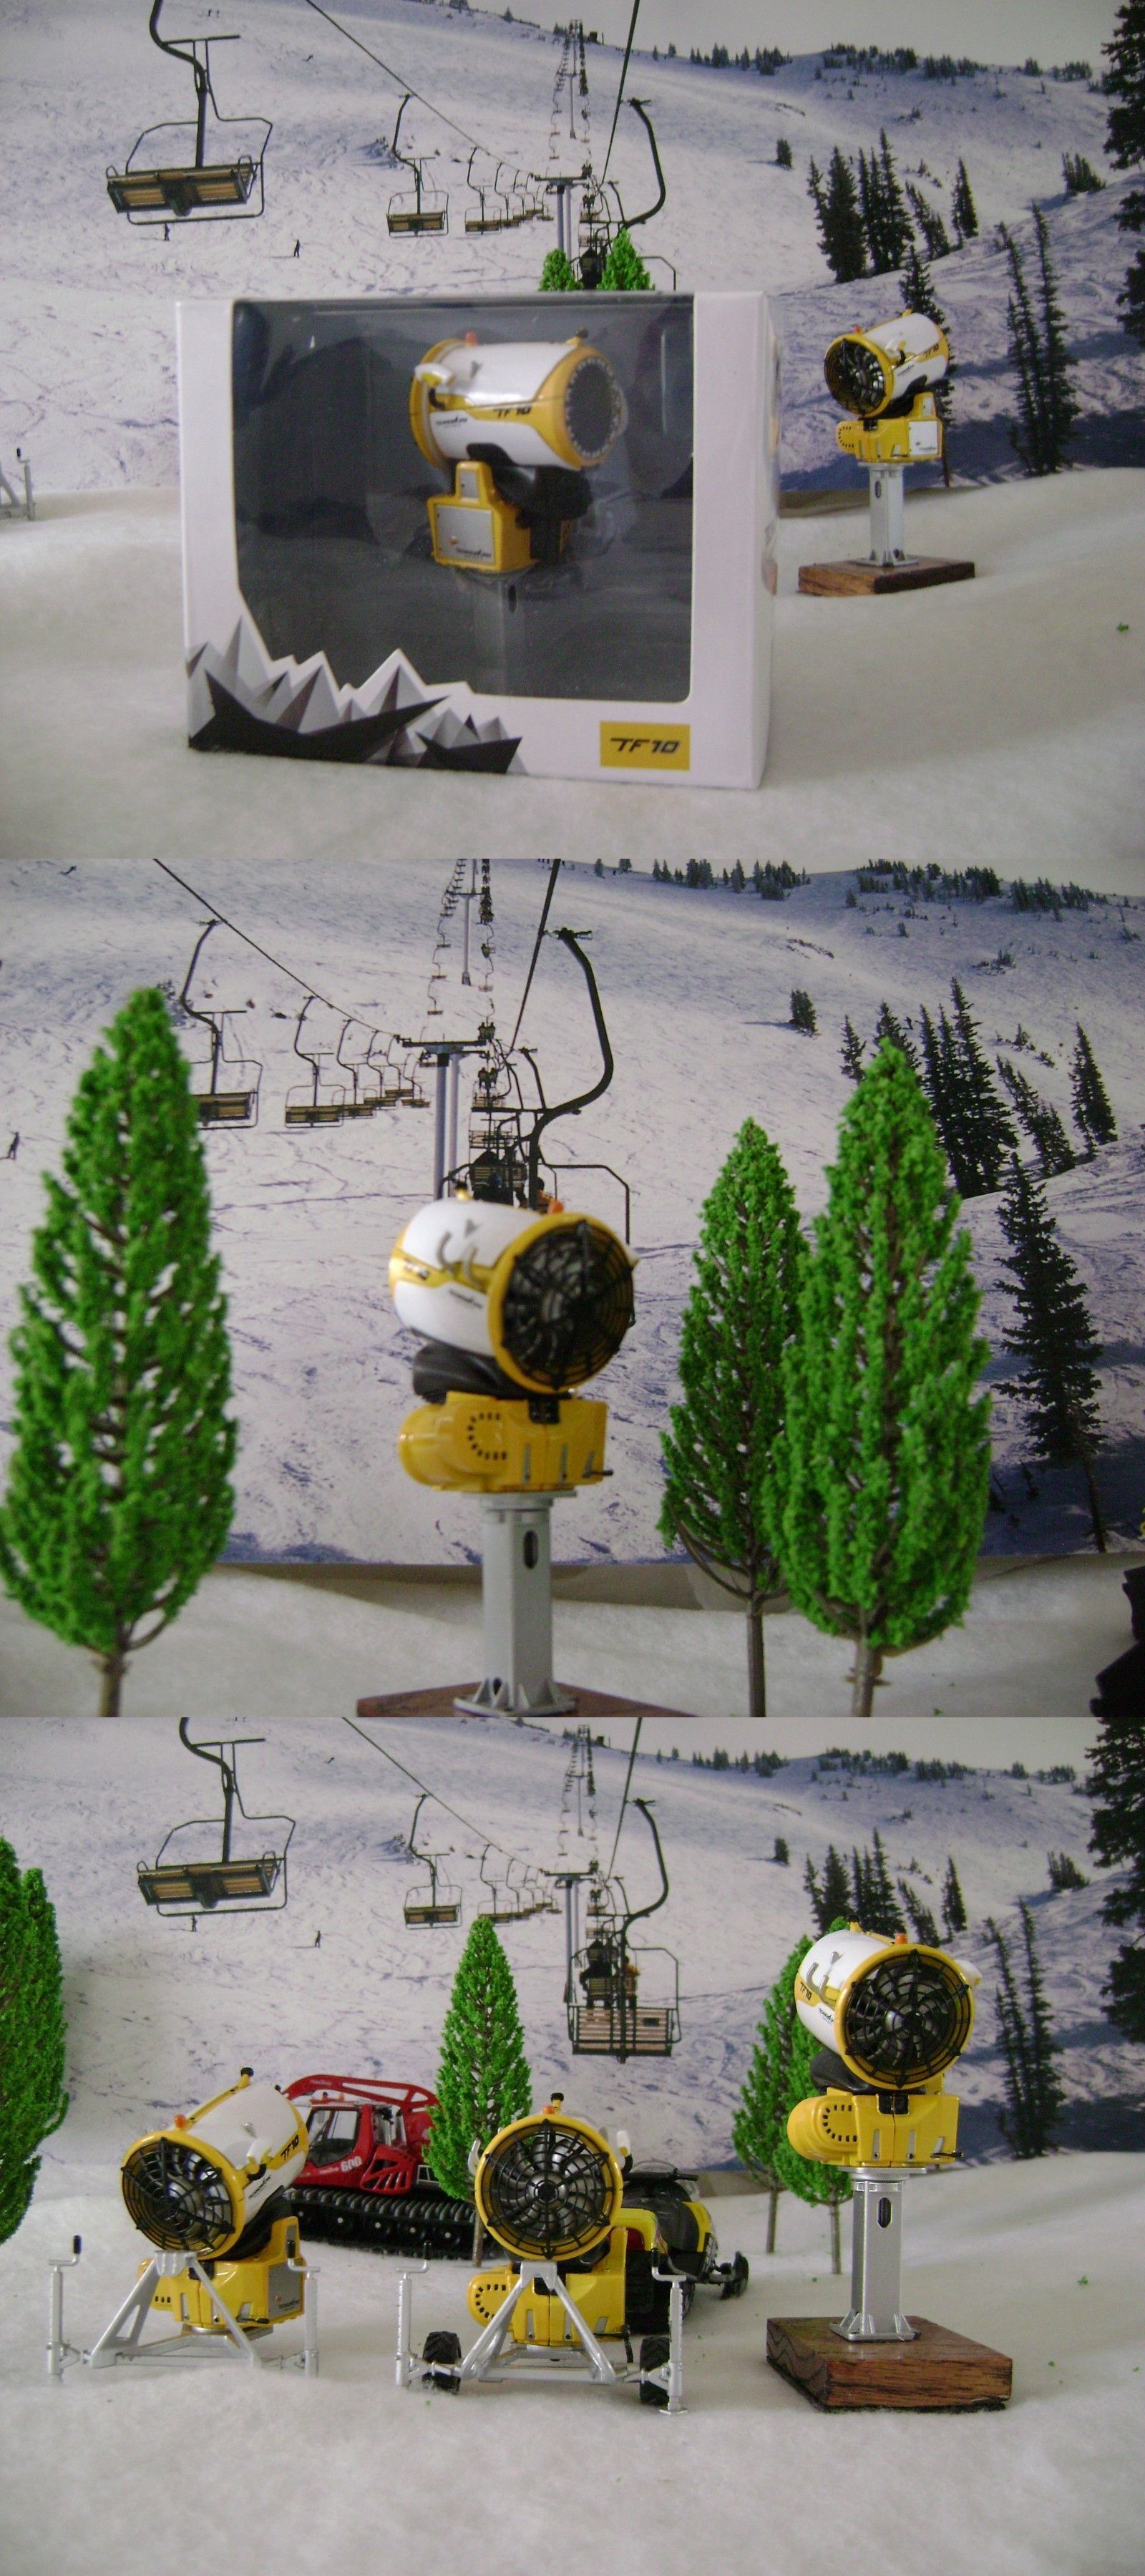 Contemporary Manufacture 152934: Snow Making Machine, Snow ...